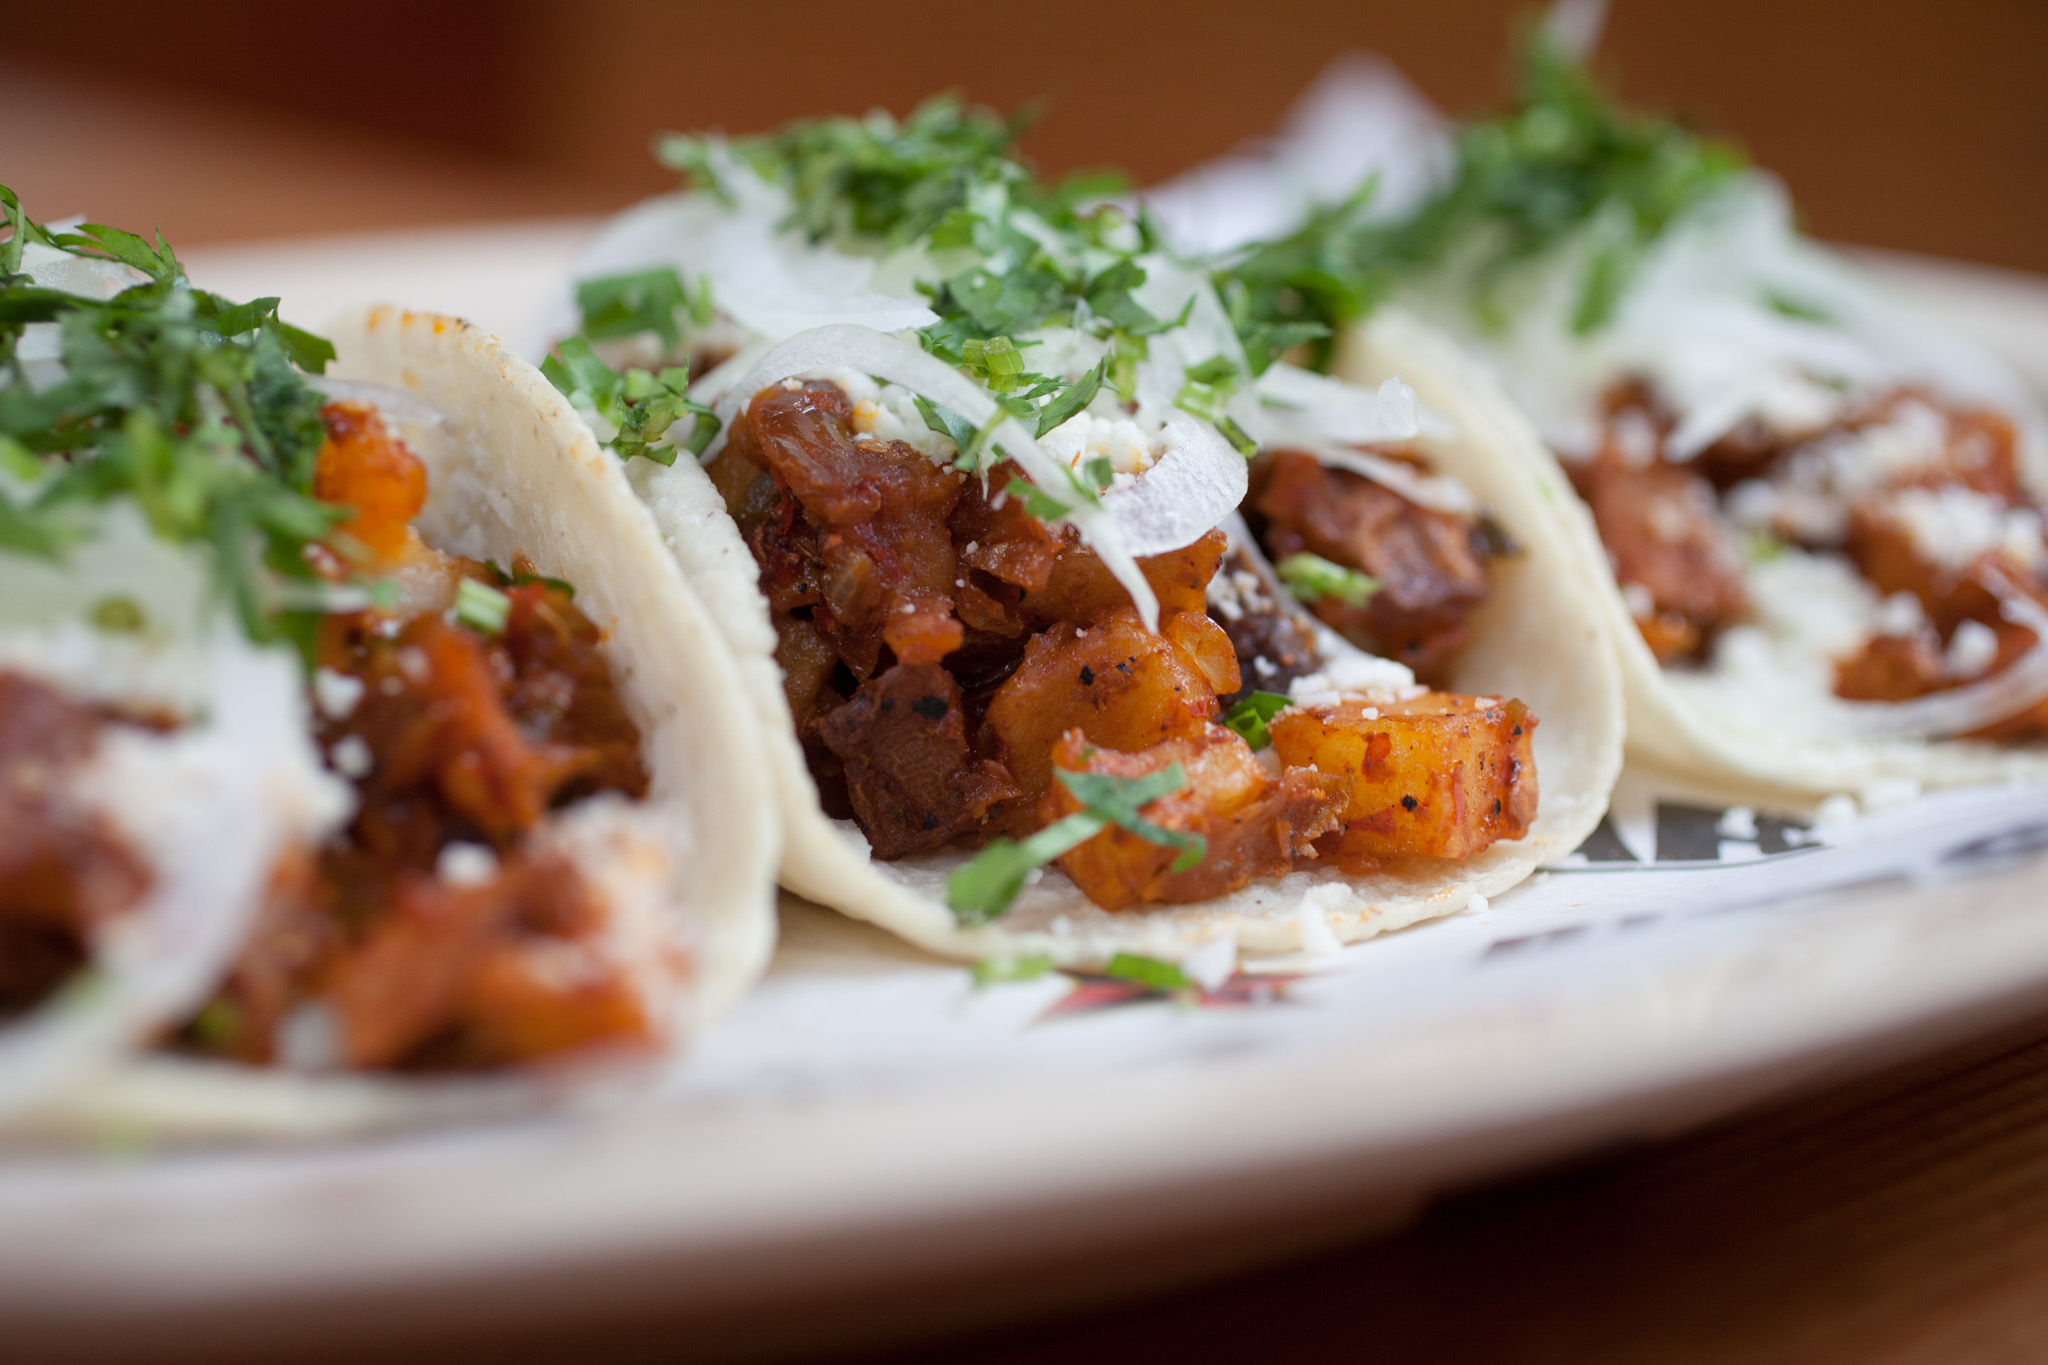 The 23 best tacos in Chicago